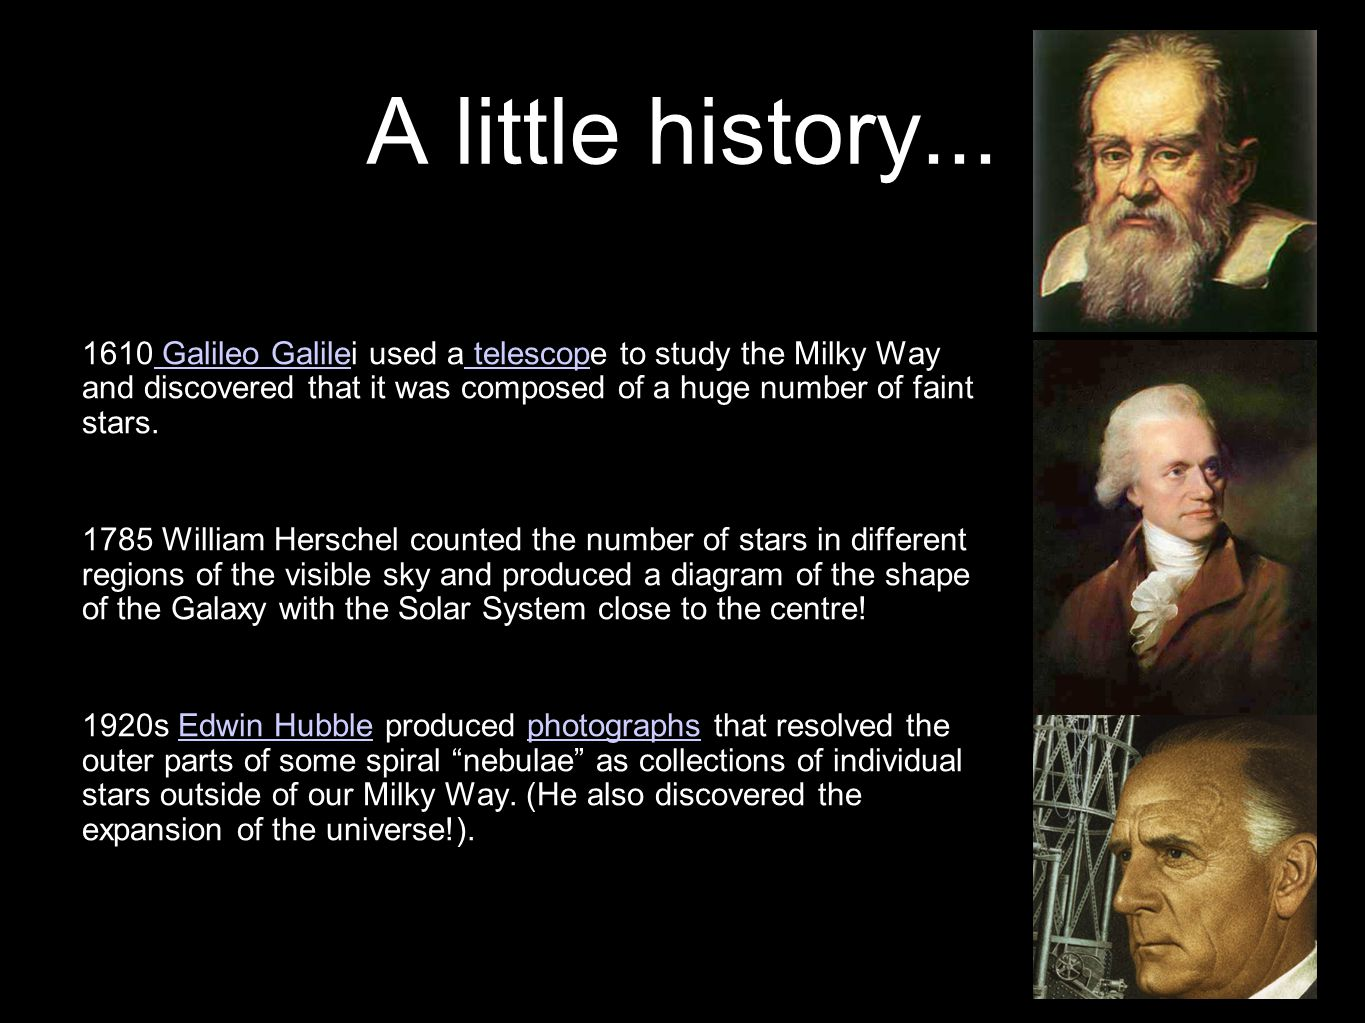 4 A little history... 1610 Galileo Galilei used a telescope to study the Milky Way and discovered that it was composed of a huge number of faint stars